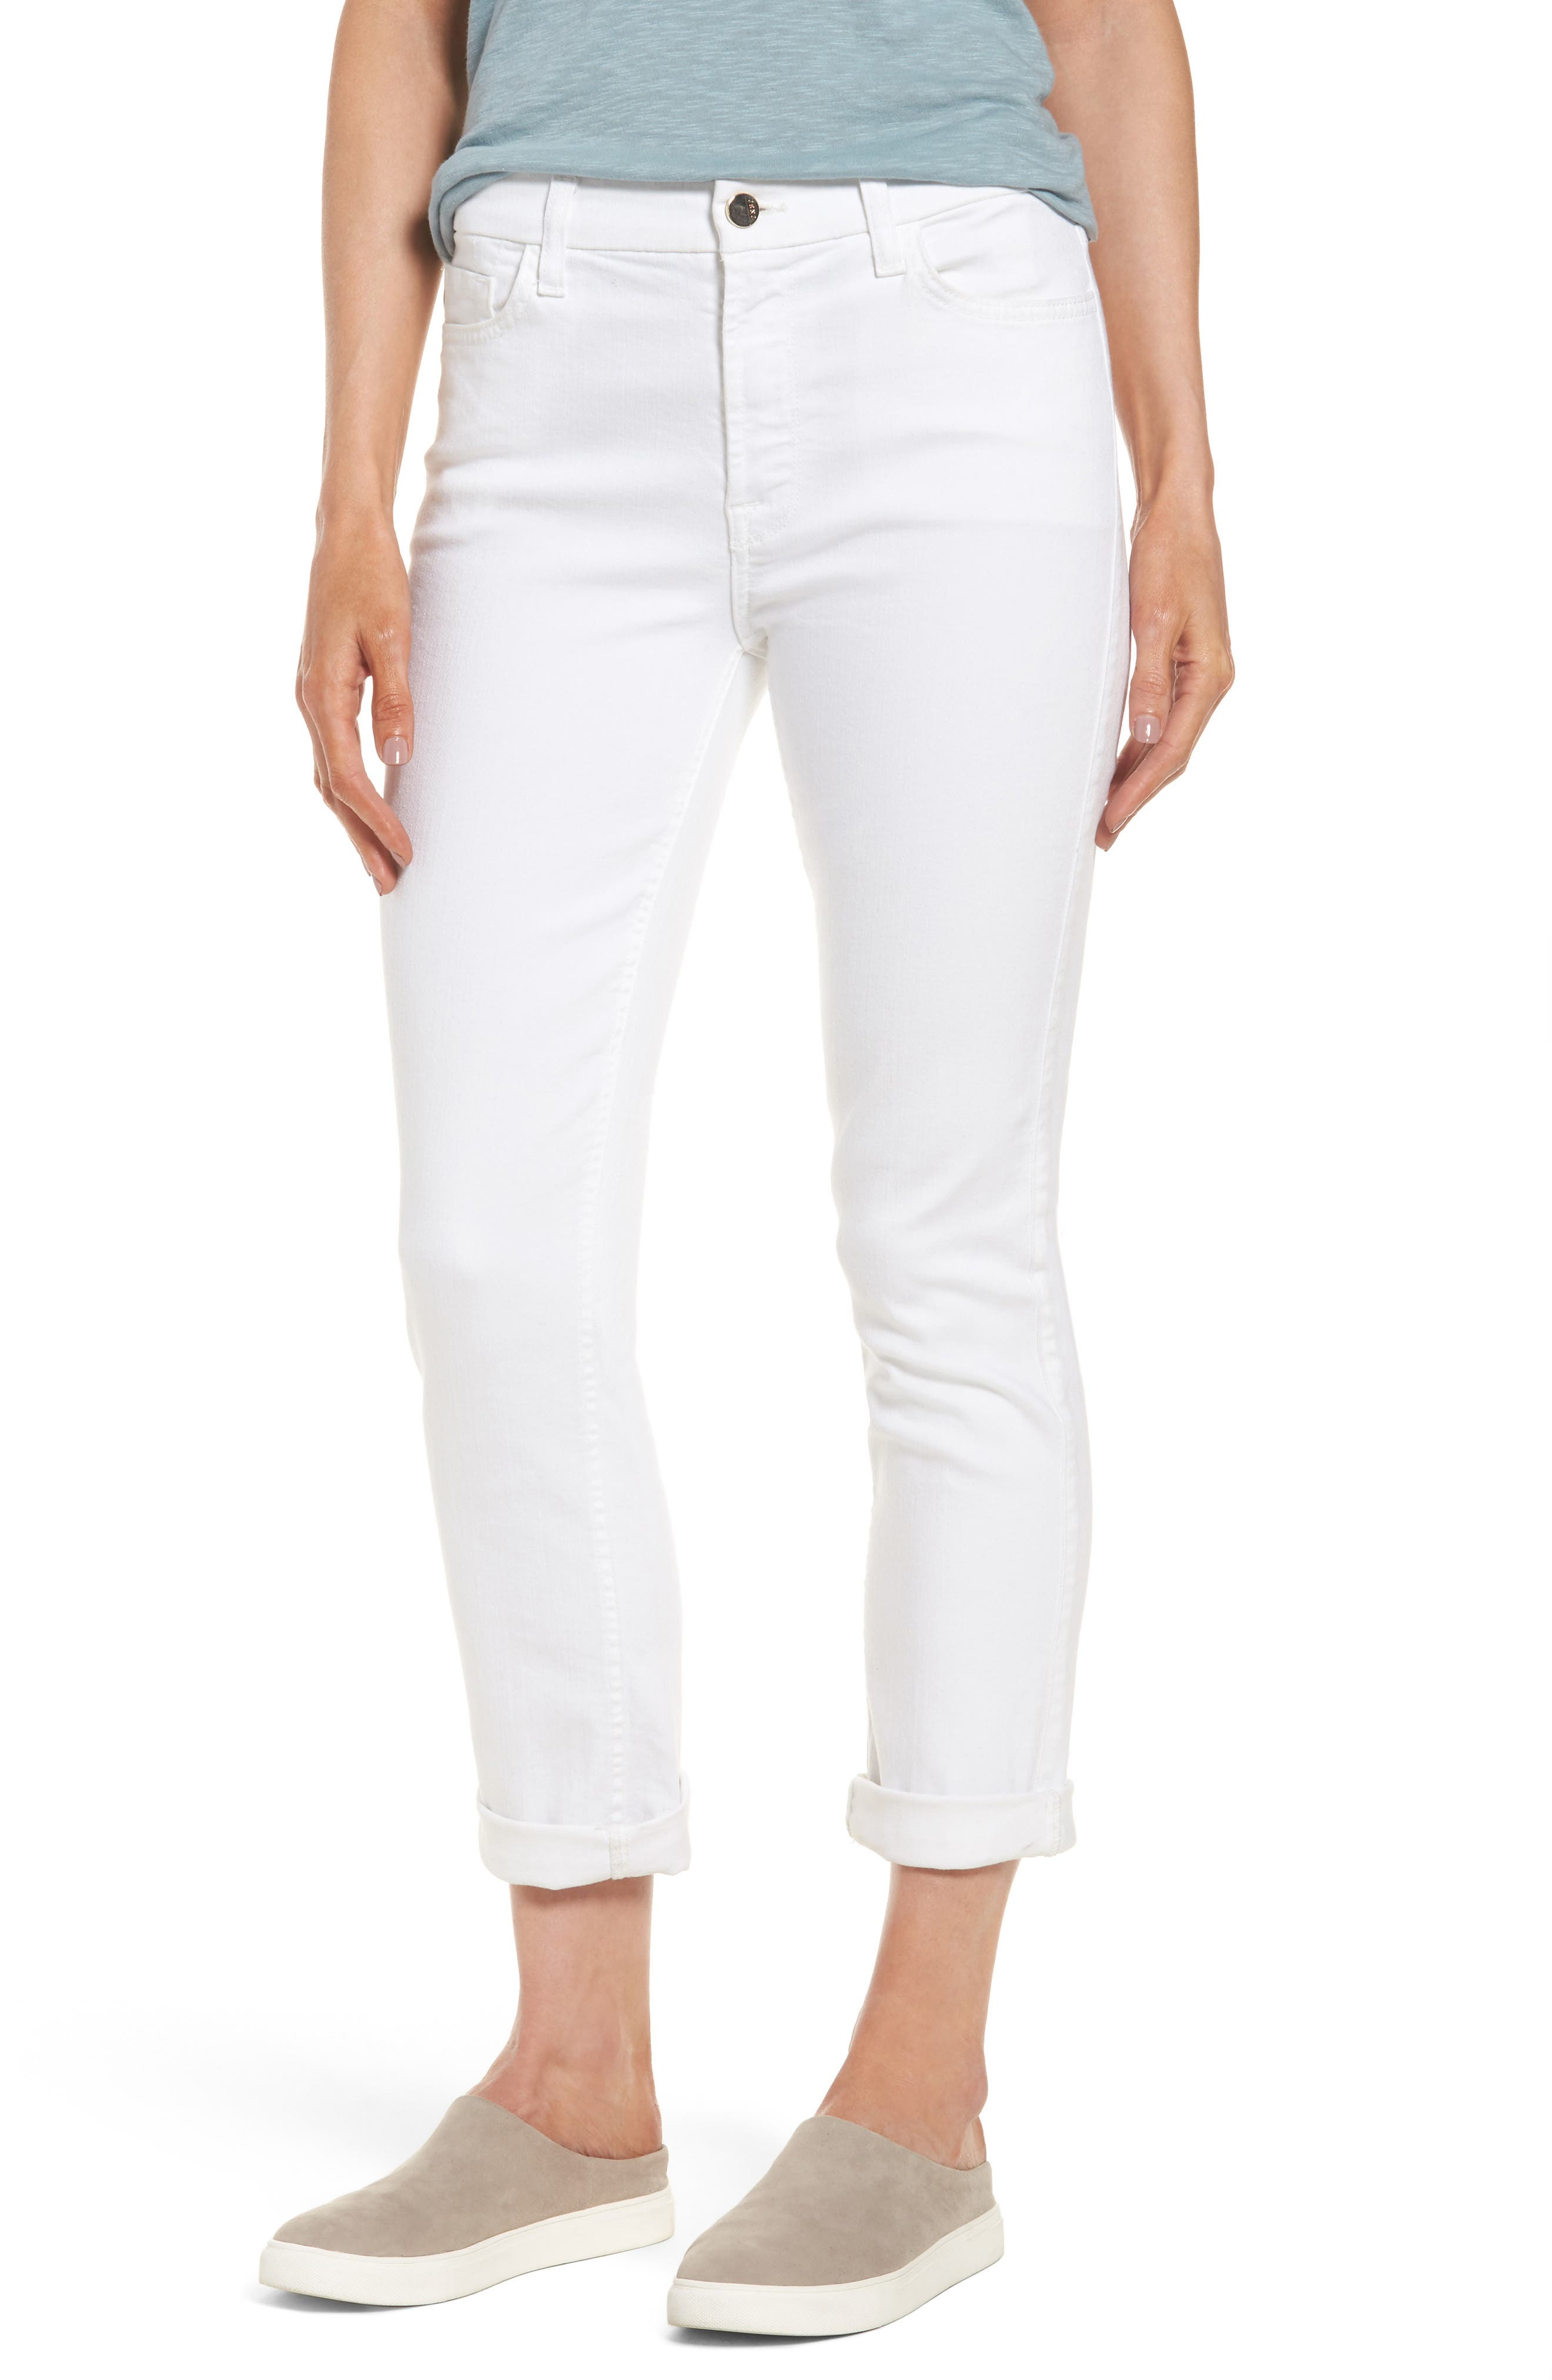 JEN7 BY 7 FOR ALL MANKIND, Stretch Straight Leg Crop Jeans, Main thumbnail 1, color, WHITE DENIM